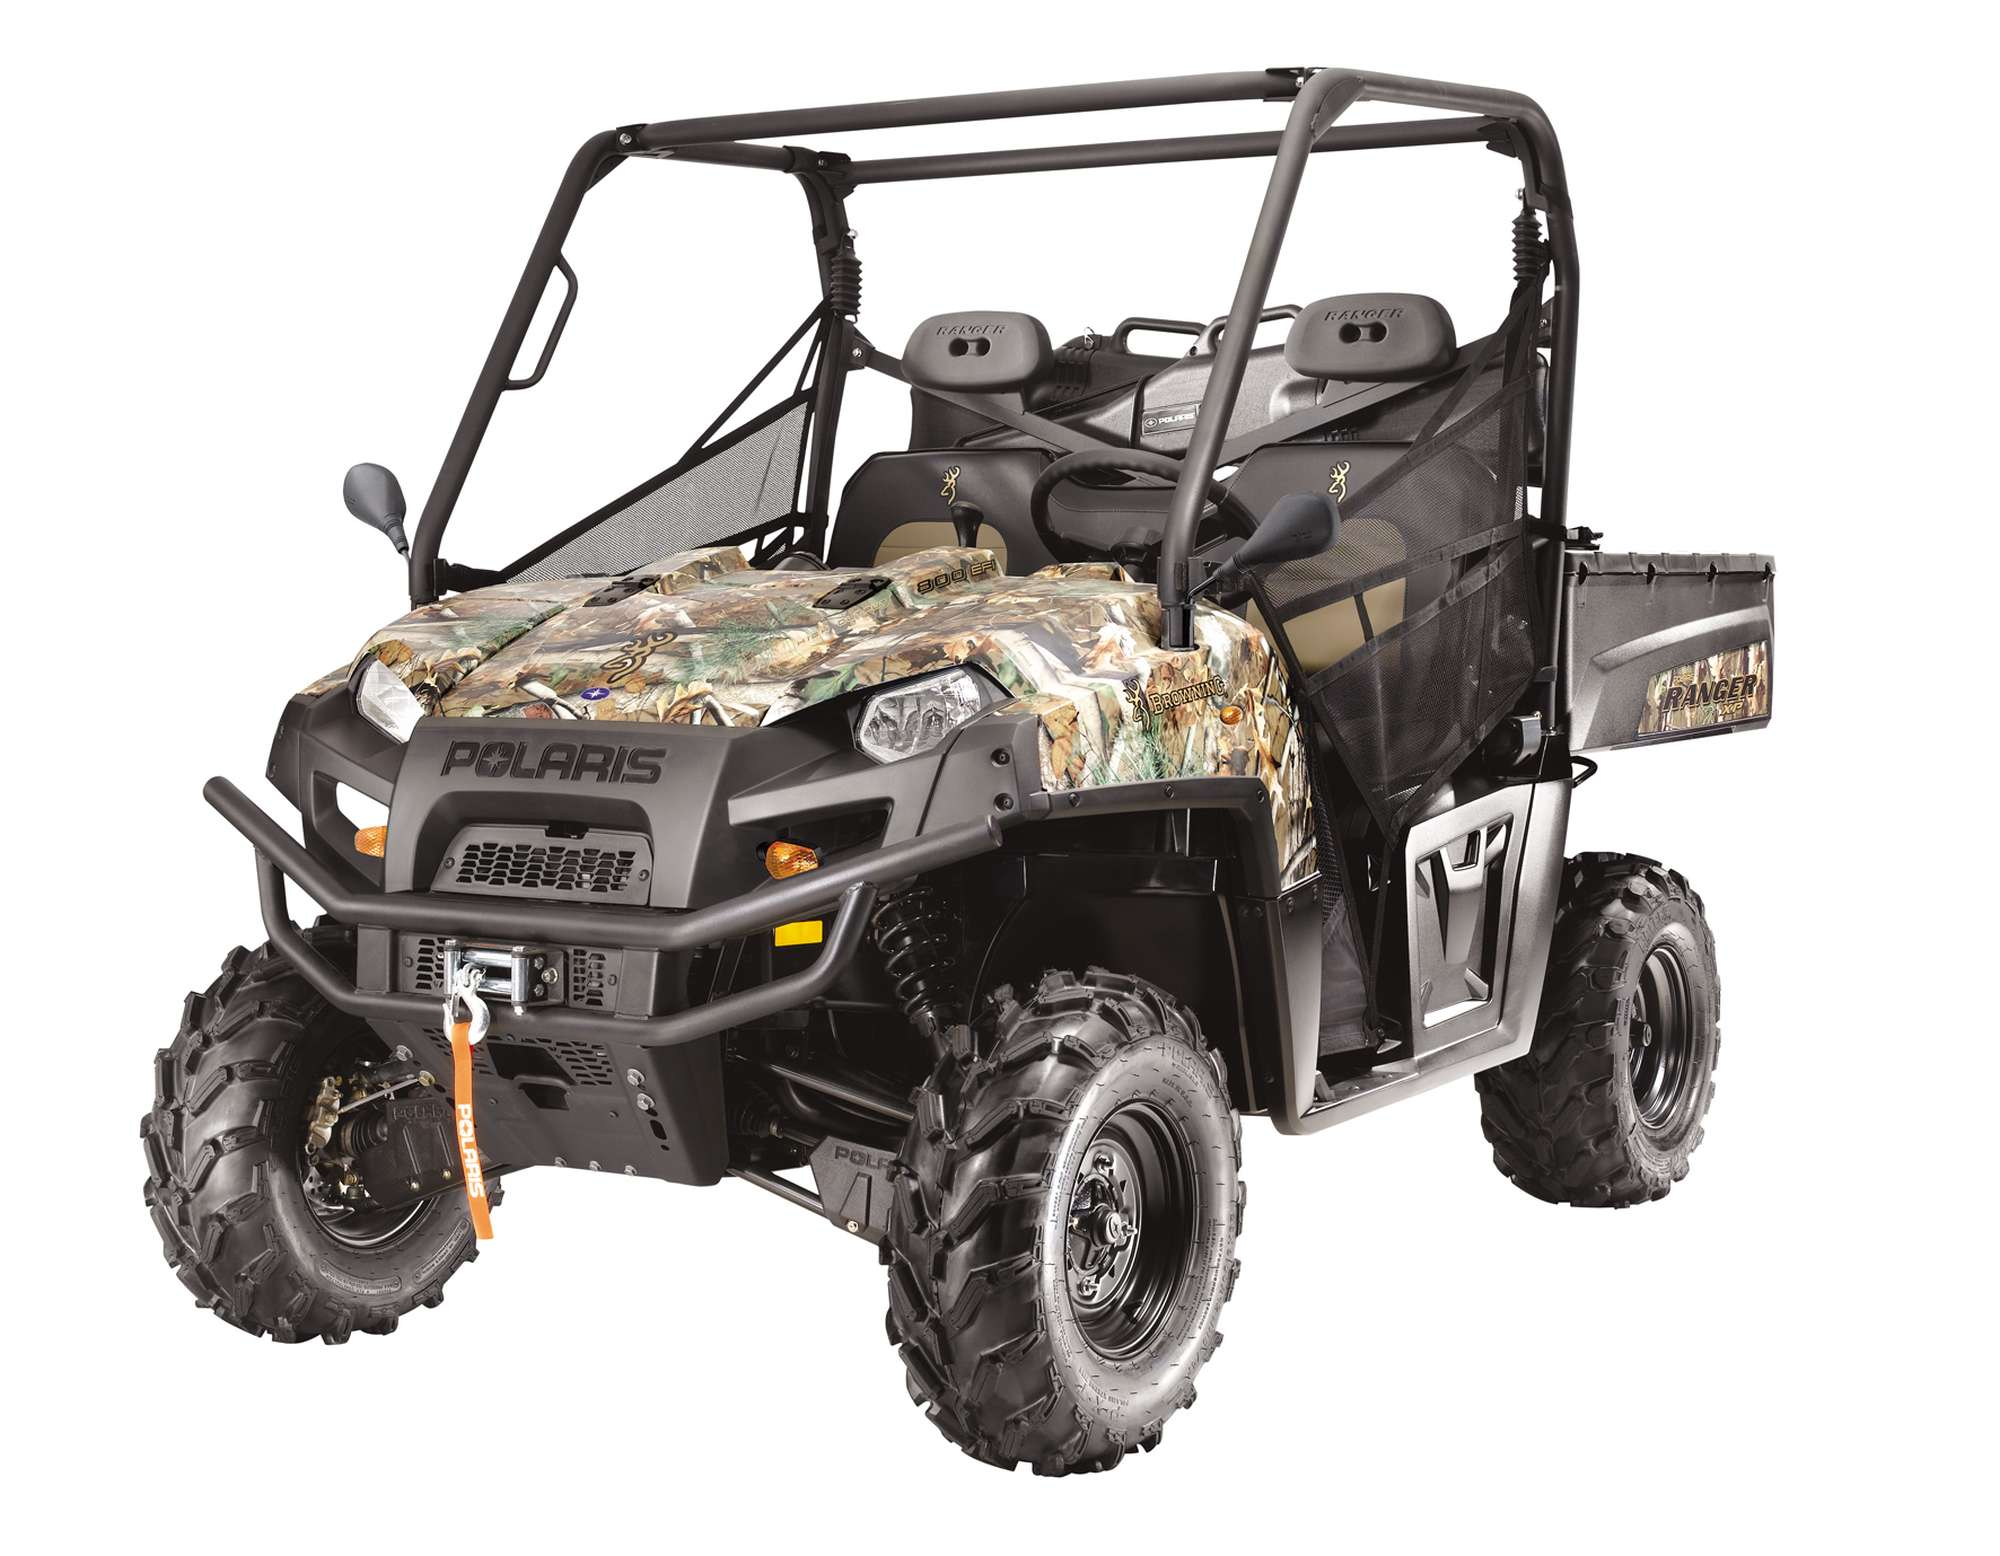 2003 polaris ranger 6x6 service manual